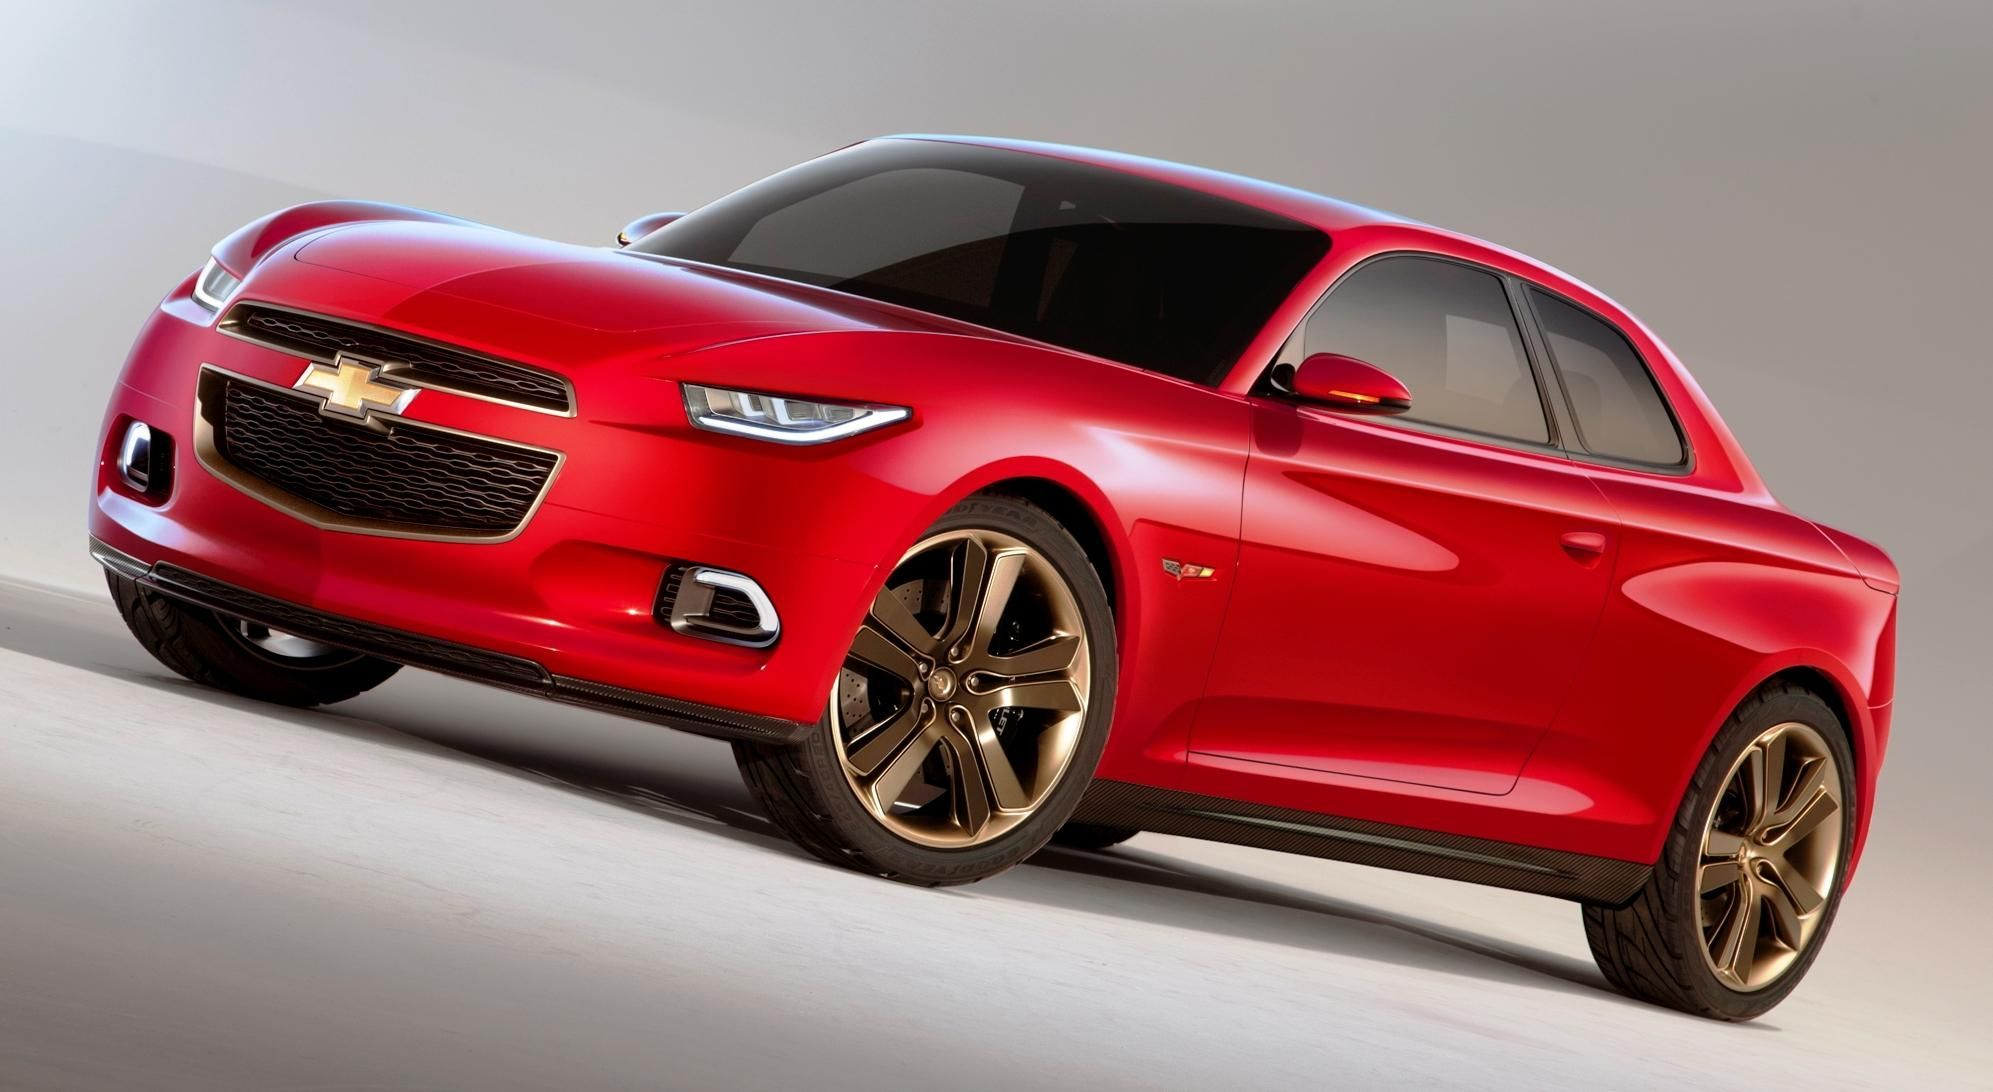 Chevy Concept Cars Introduces Pair Of Trucks Chevroletchevellecliccars